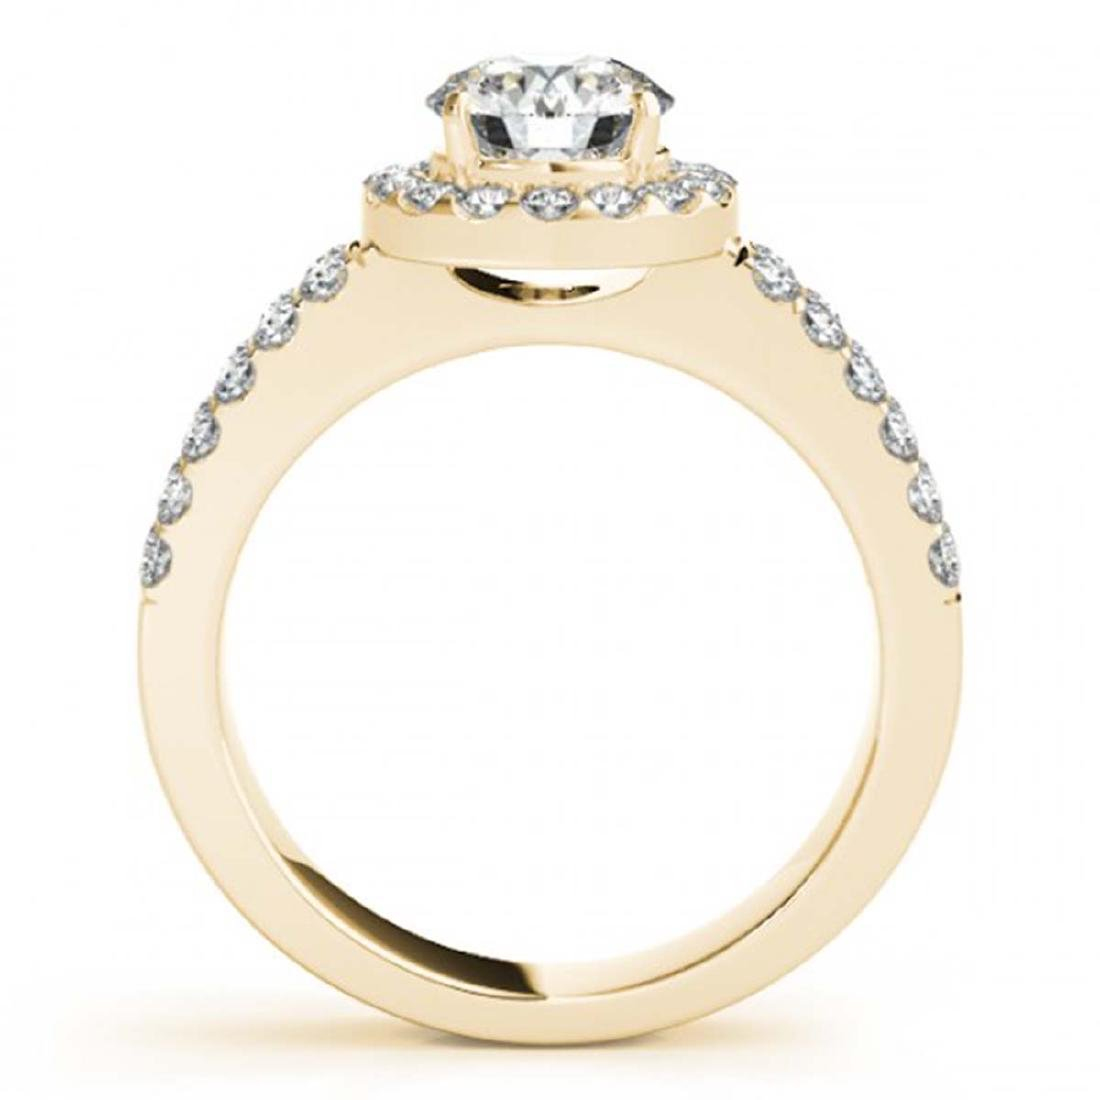 1.25 ctw VS/SI Diamond Solitaire Halo Ring 14K Yellow - 2